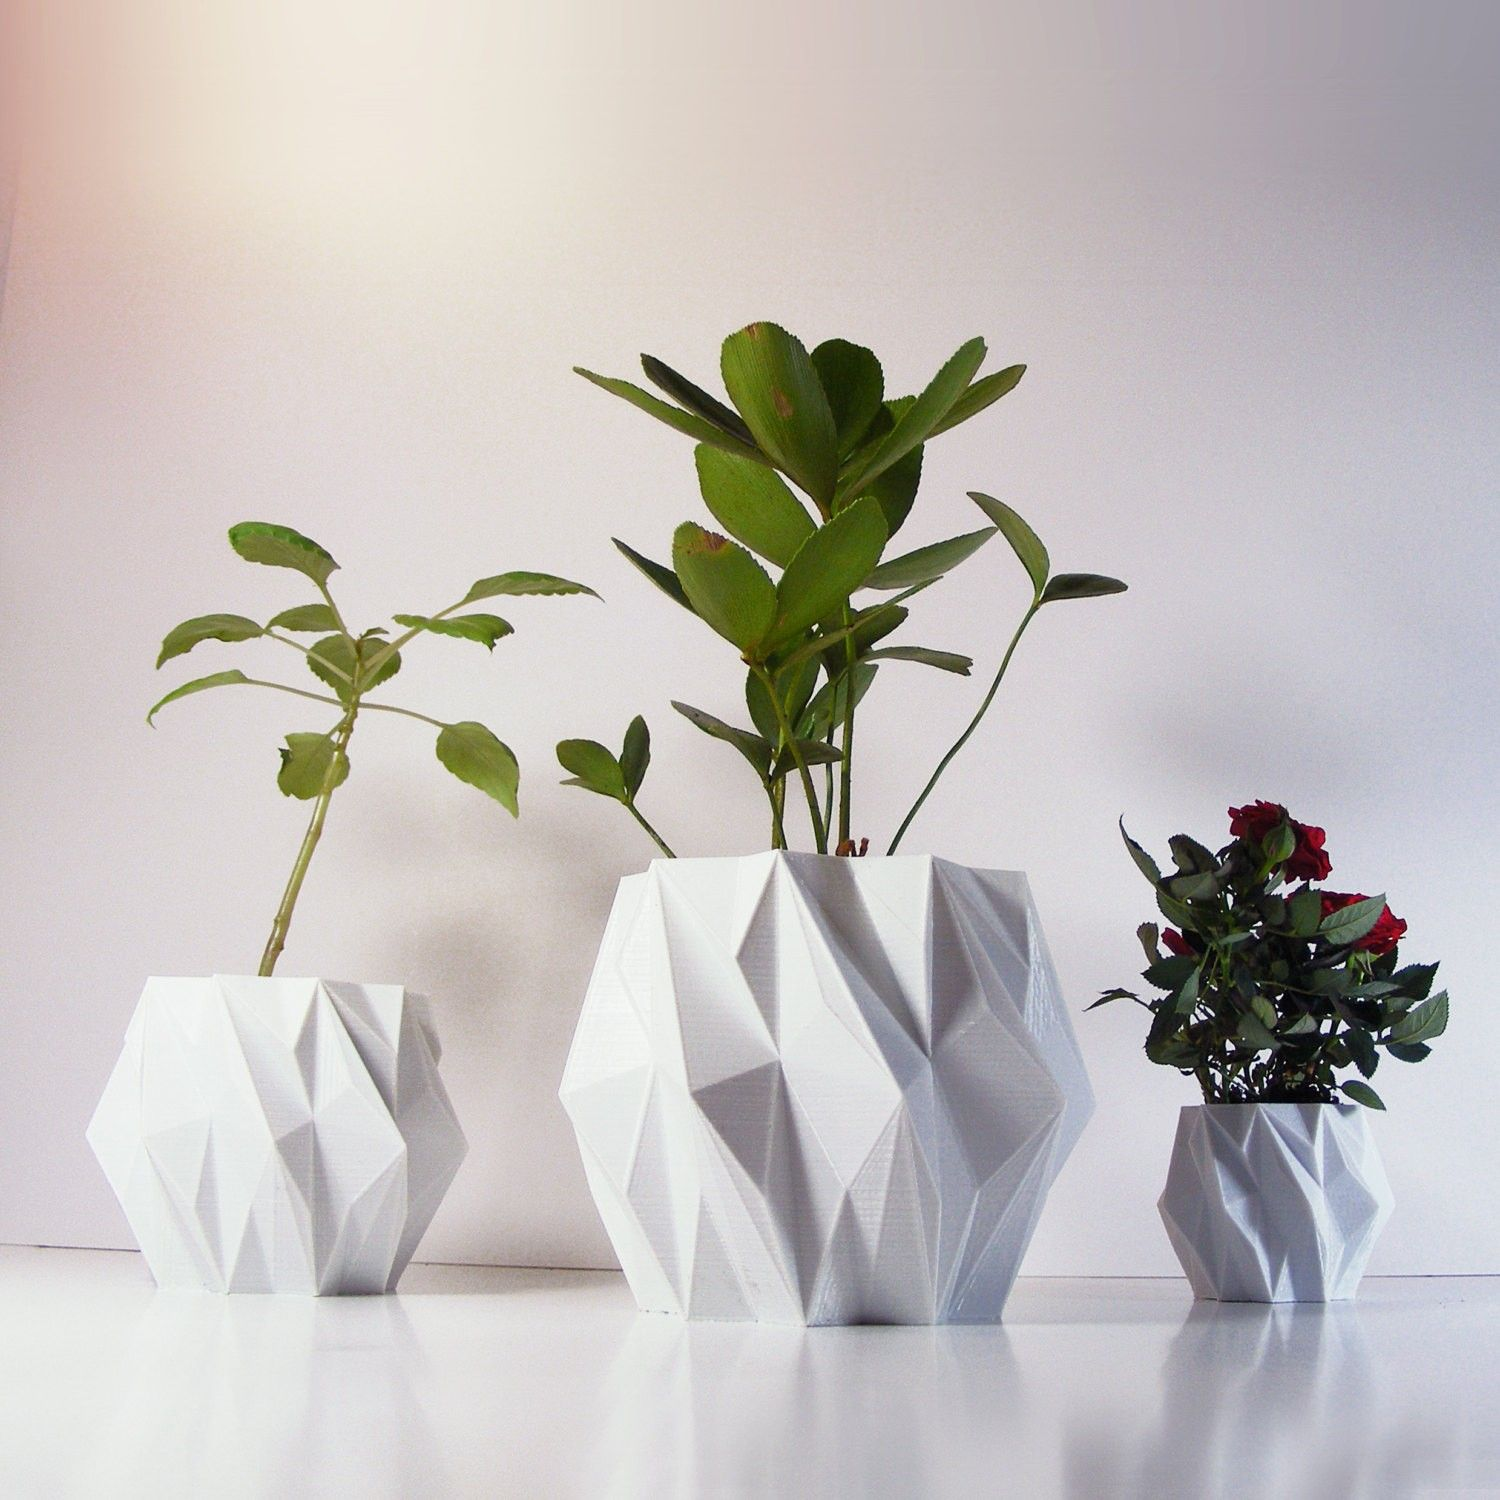 Pin by Nicole Zeng on 绿植 | Pinterest | Plants, 3d and Concrete